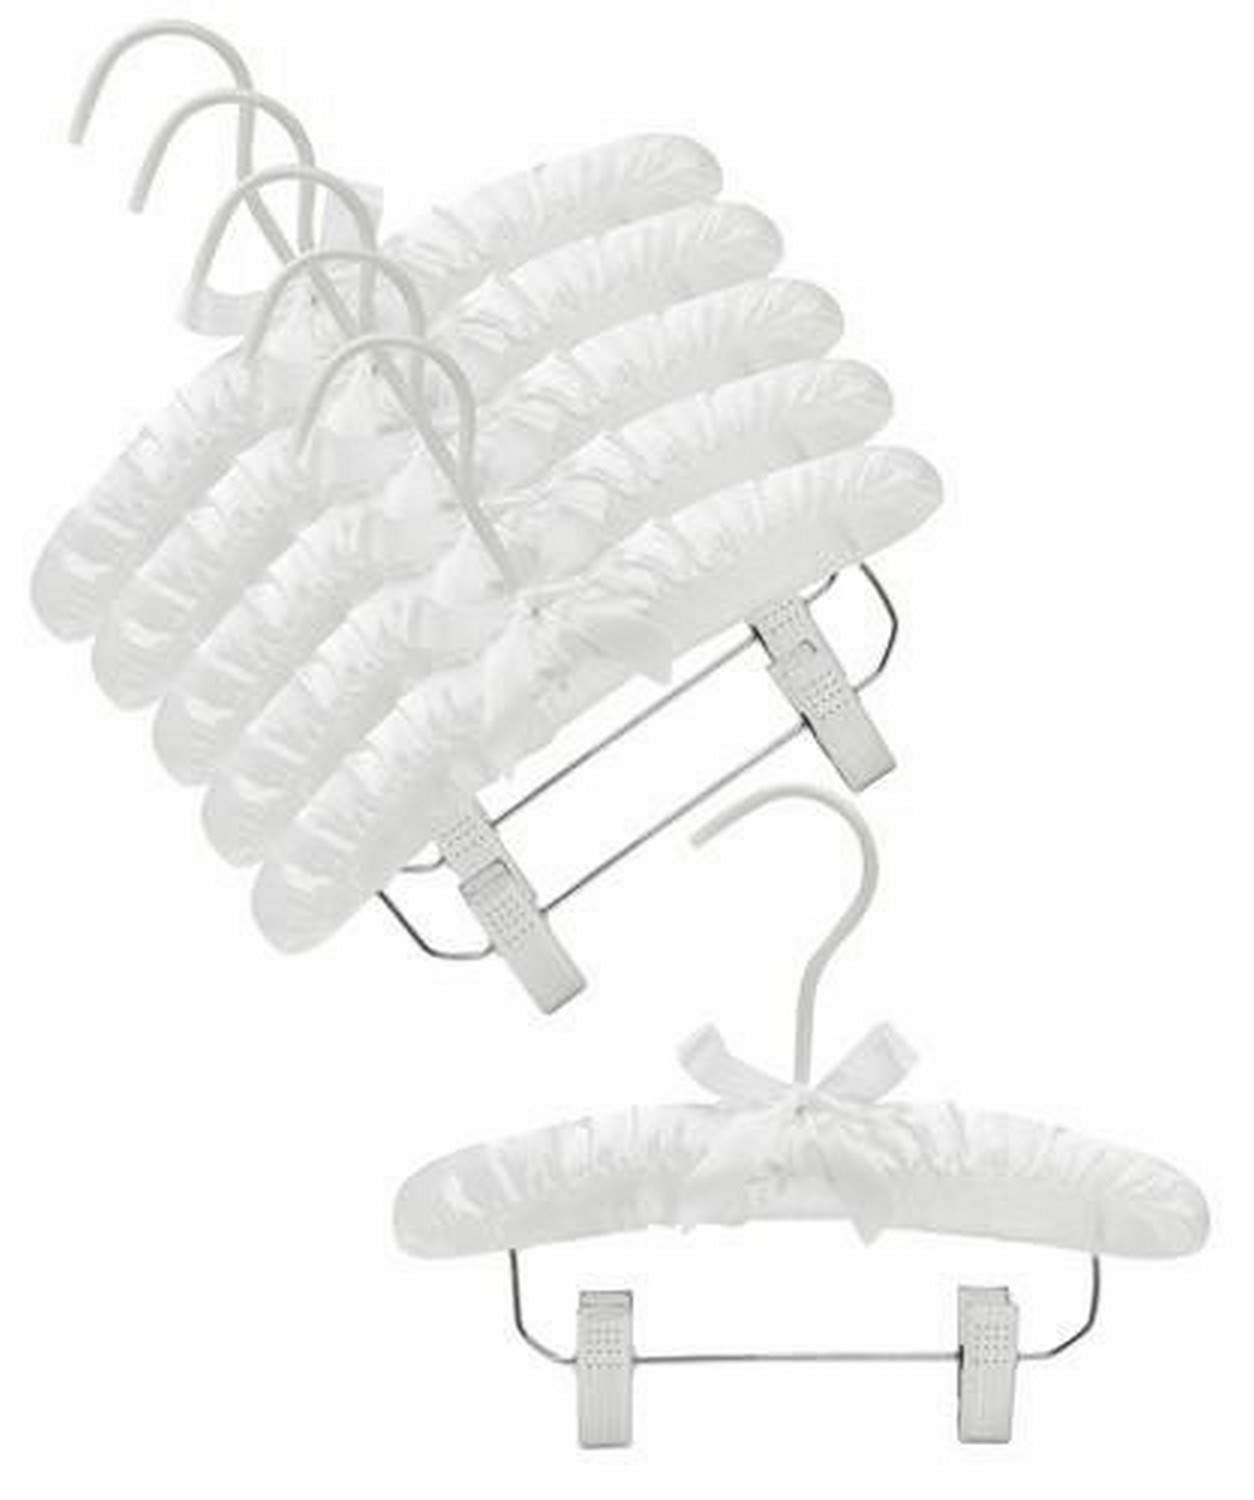 """Only Hangers 10"""" White Baby Satin Padded Hangers with Clips- Pack of (6)"""